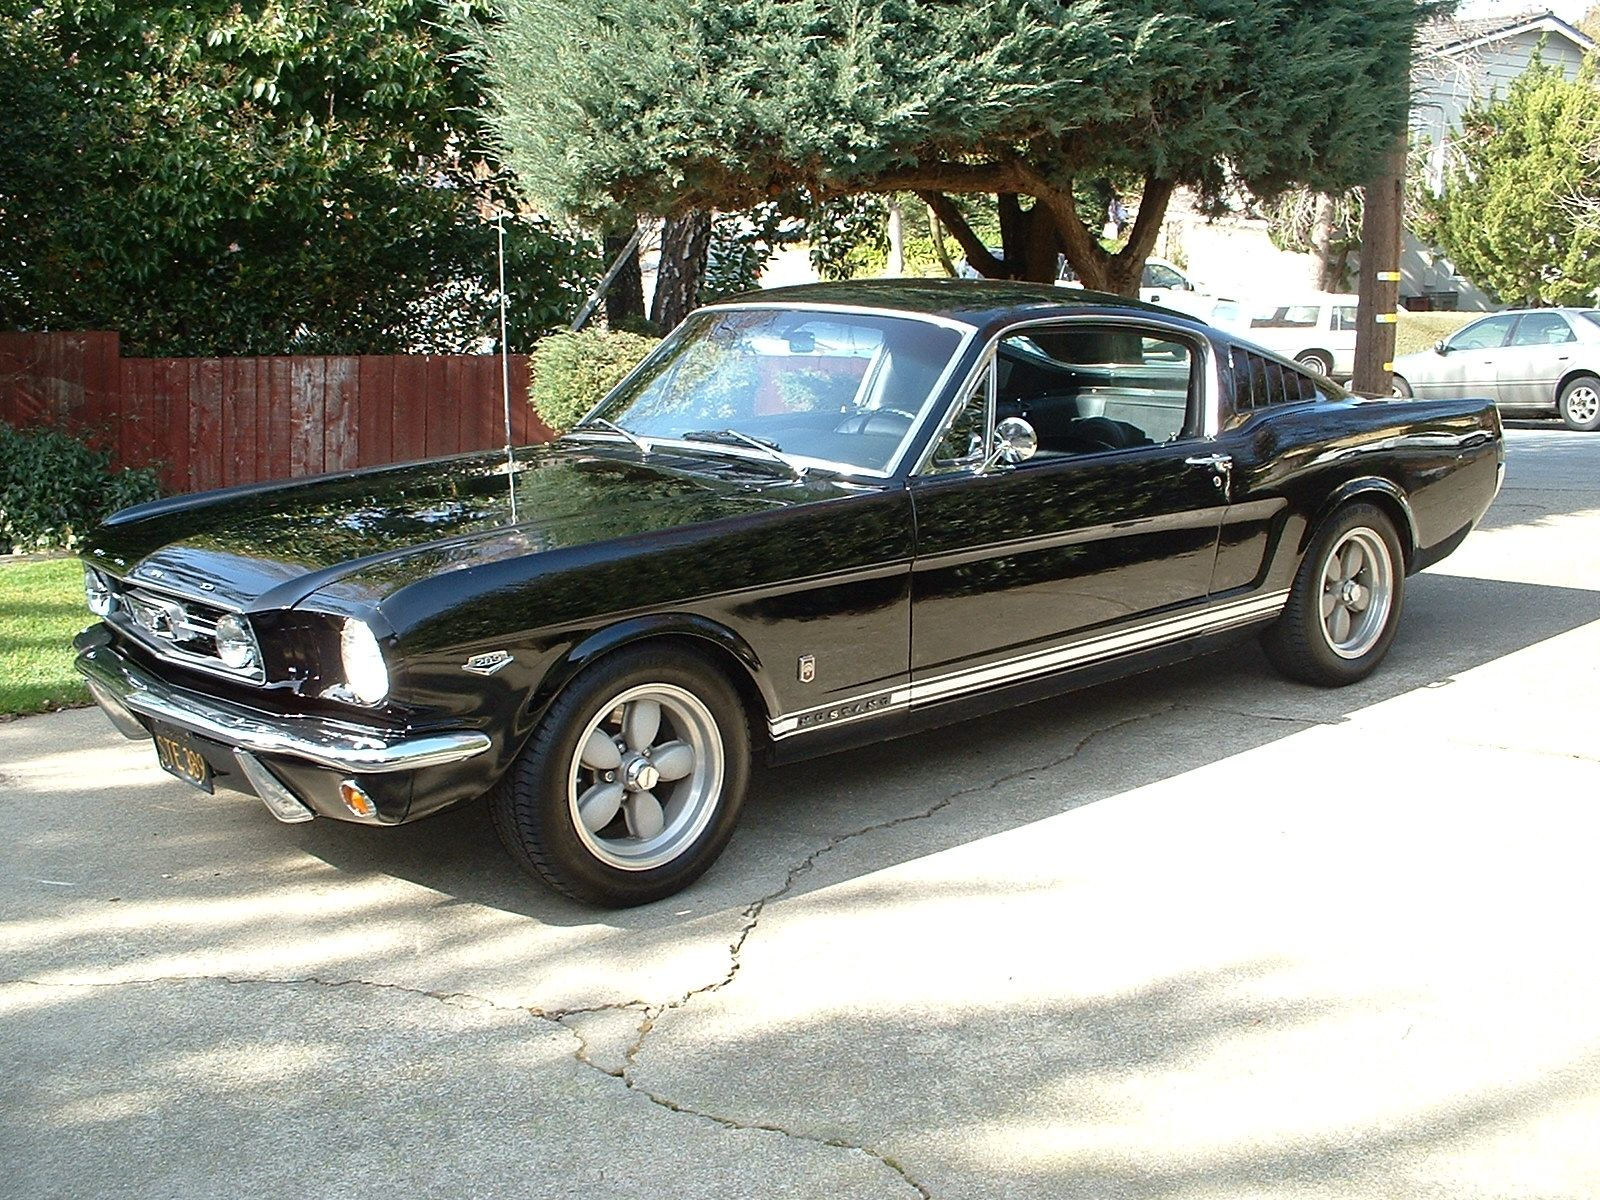 65 fastback ford mustang mustangs amp rods ford muscle cars for sale - 1966 Ford Mustang Fastback Gt